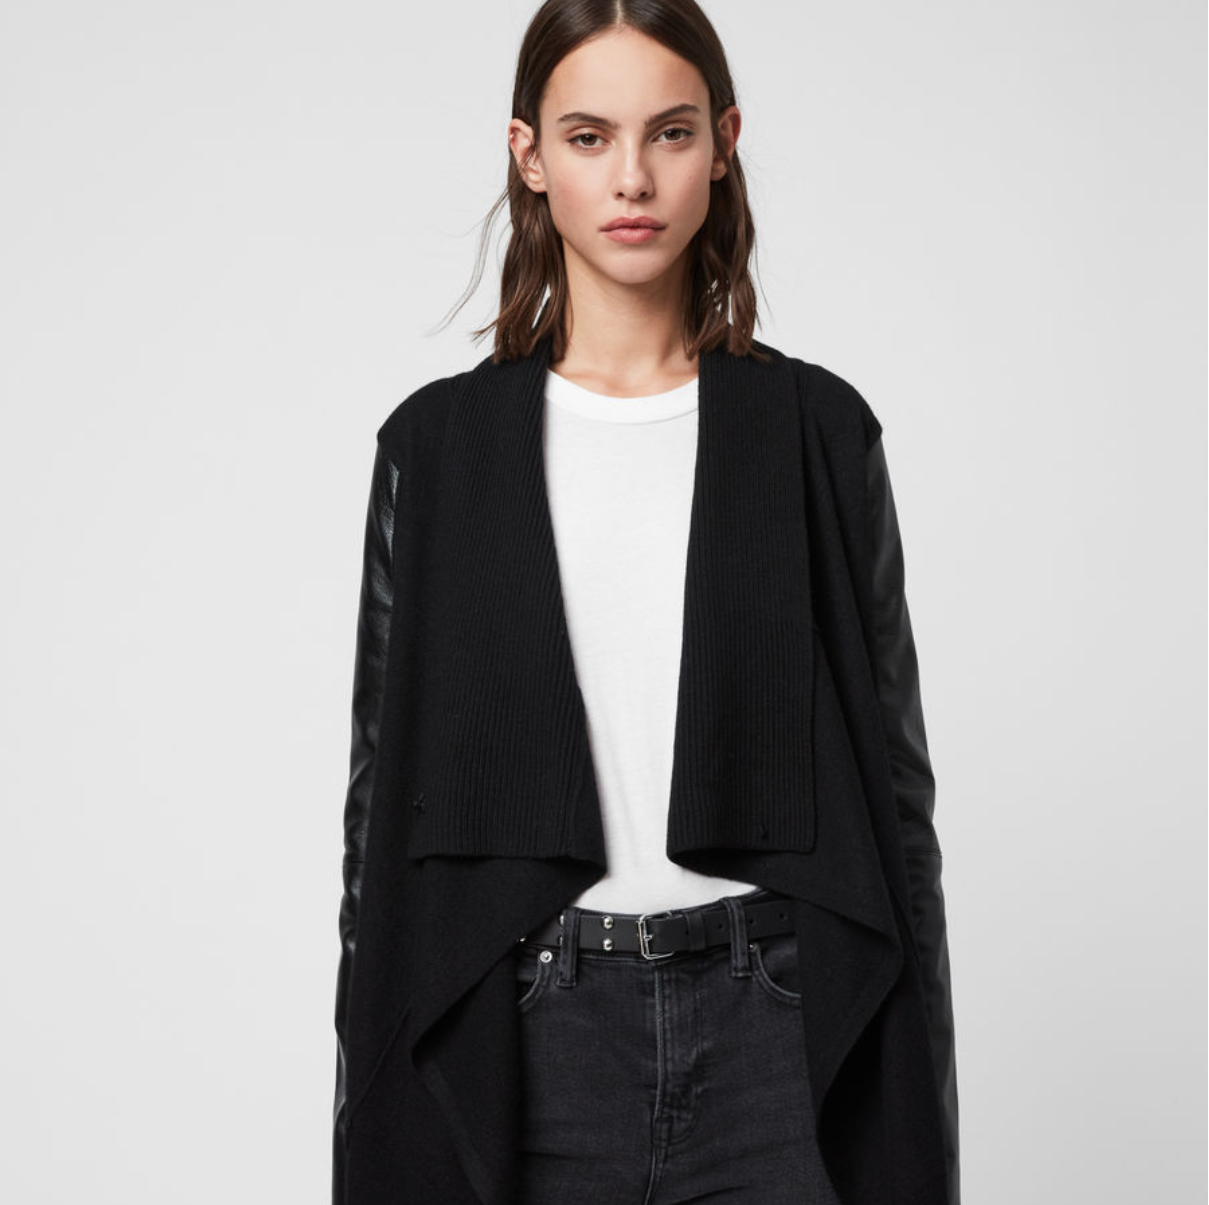 All Saints: 15% off full priced styles from FatCoupon